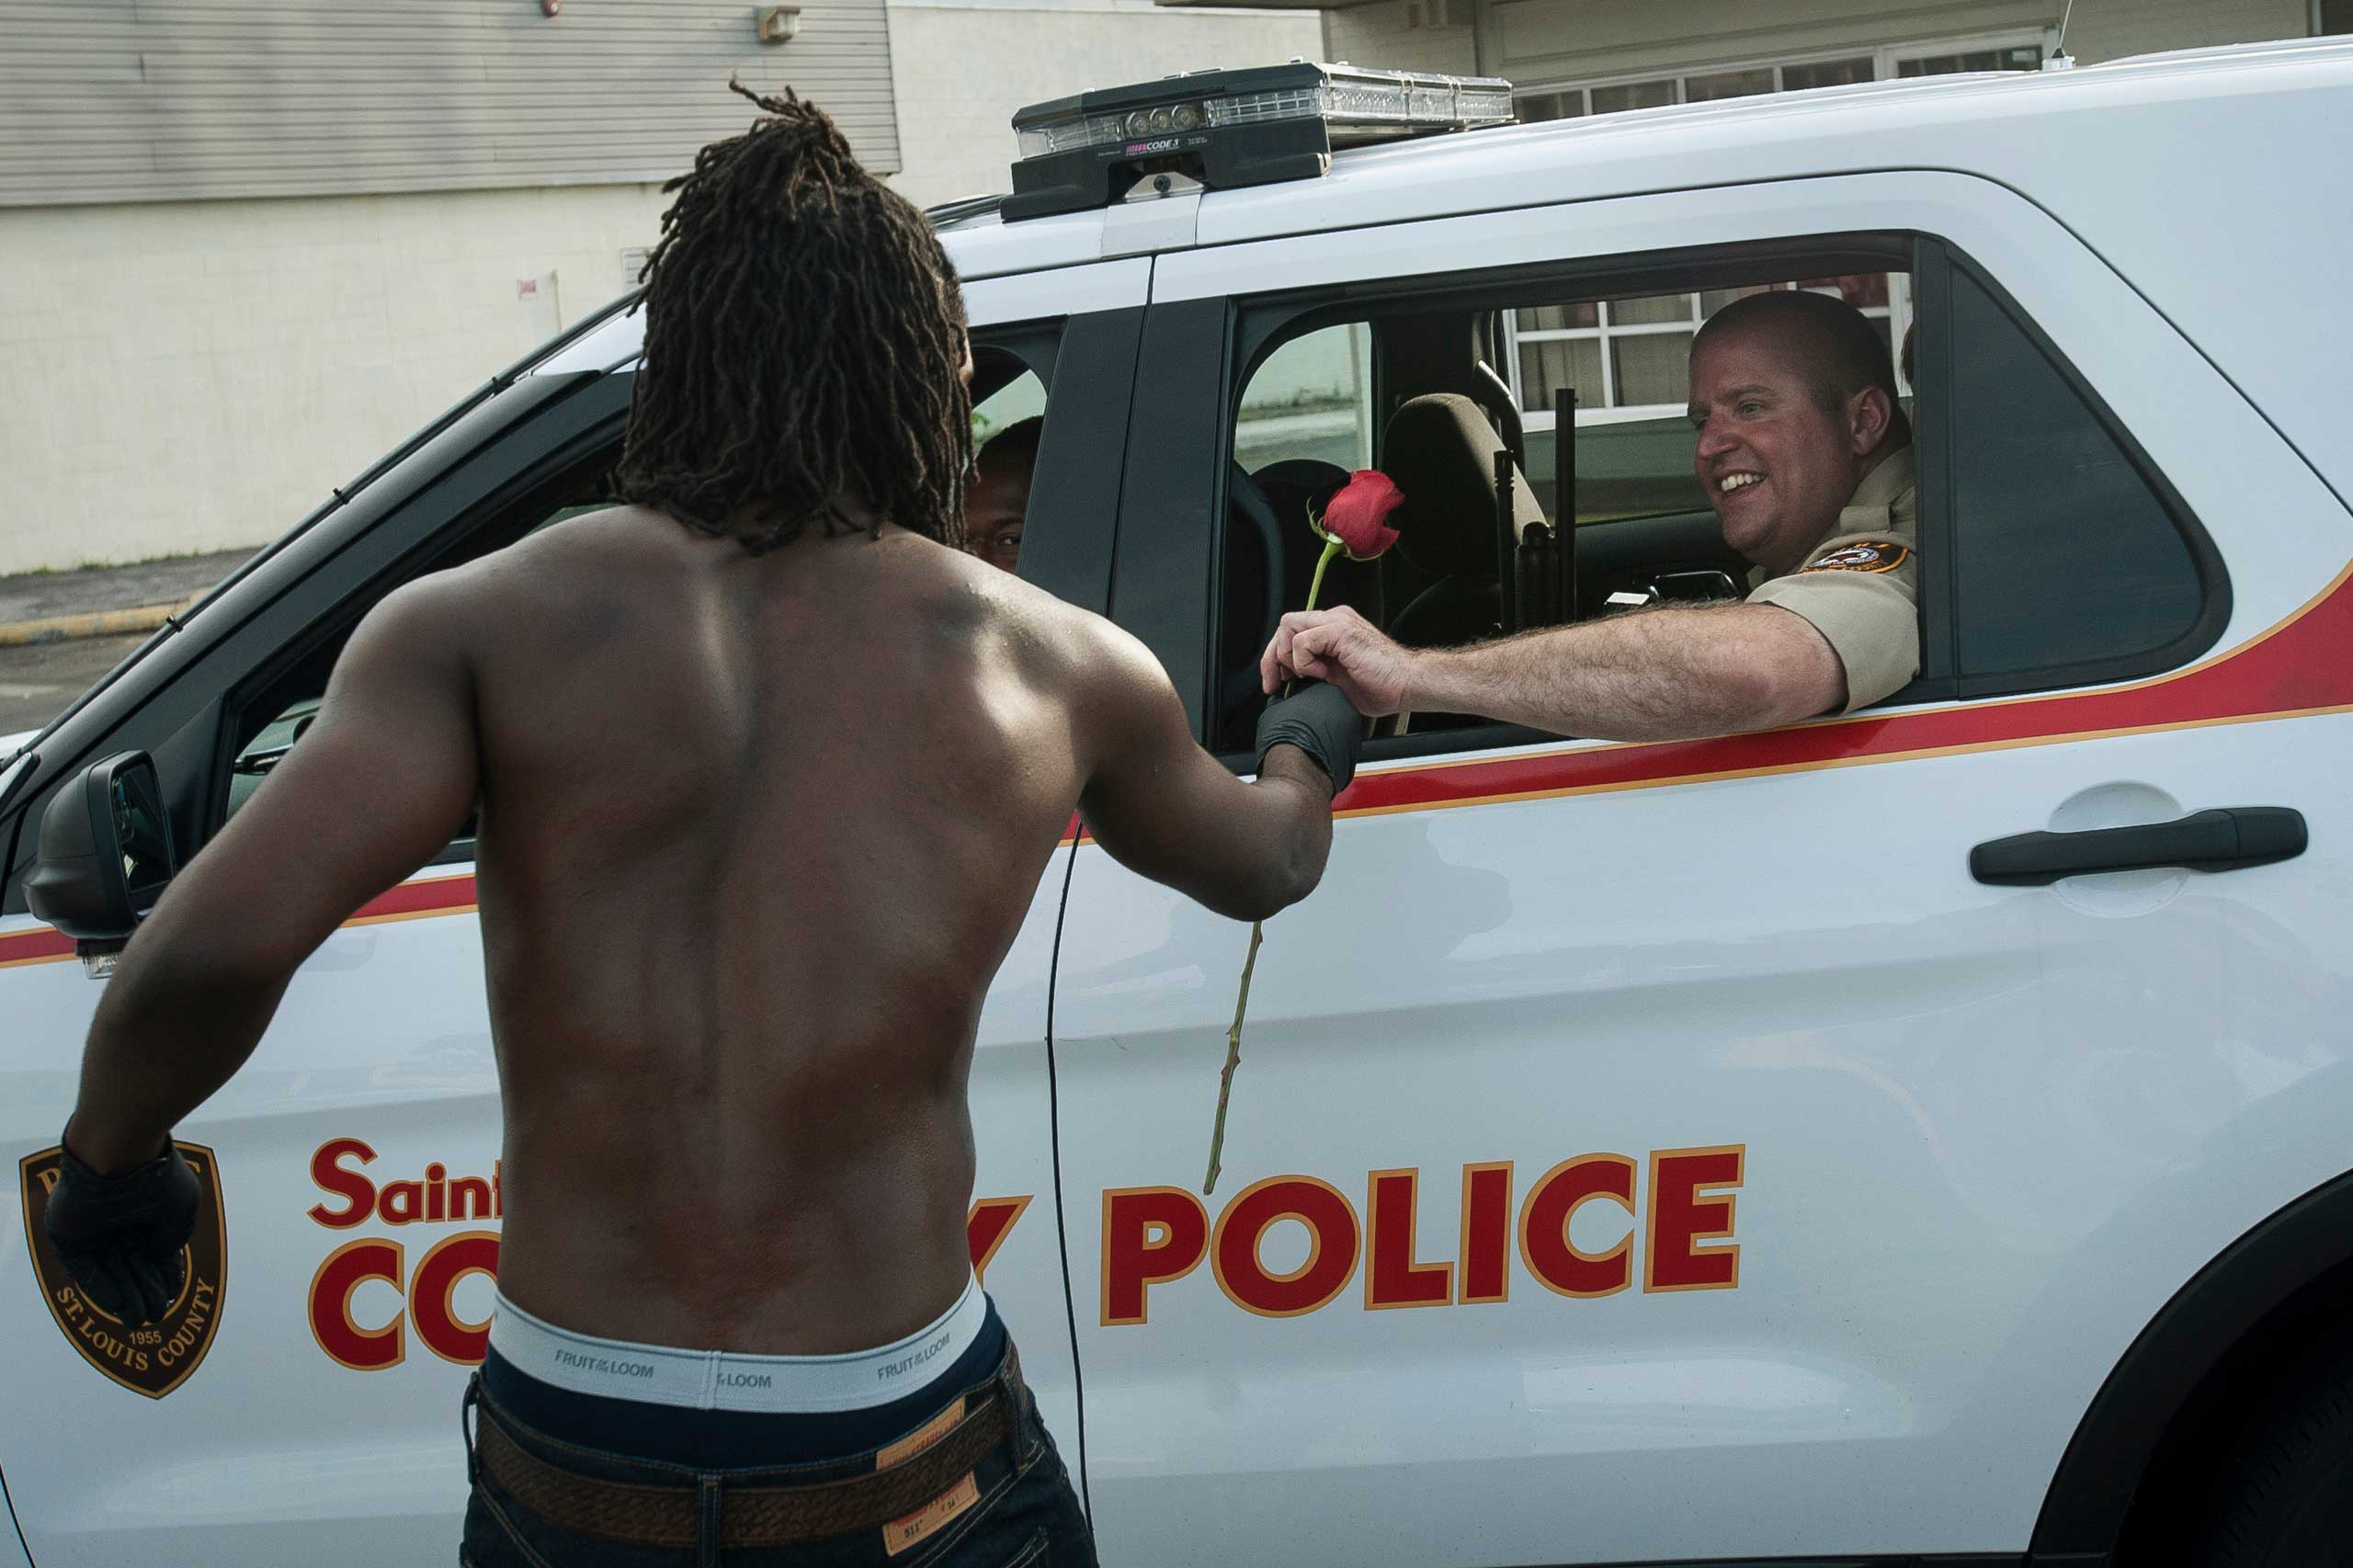 Resident John West hands a rose to a police officer during cleanup efforts in Ferguson, Mo. on Aug. 19, 2014.